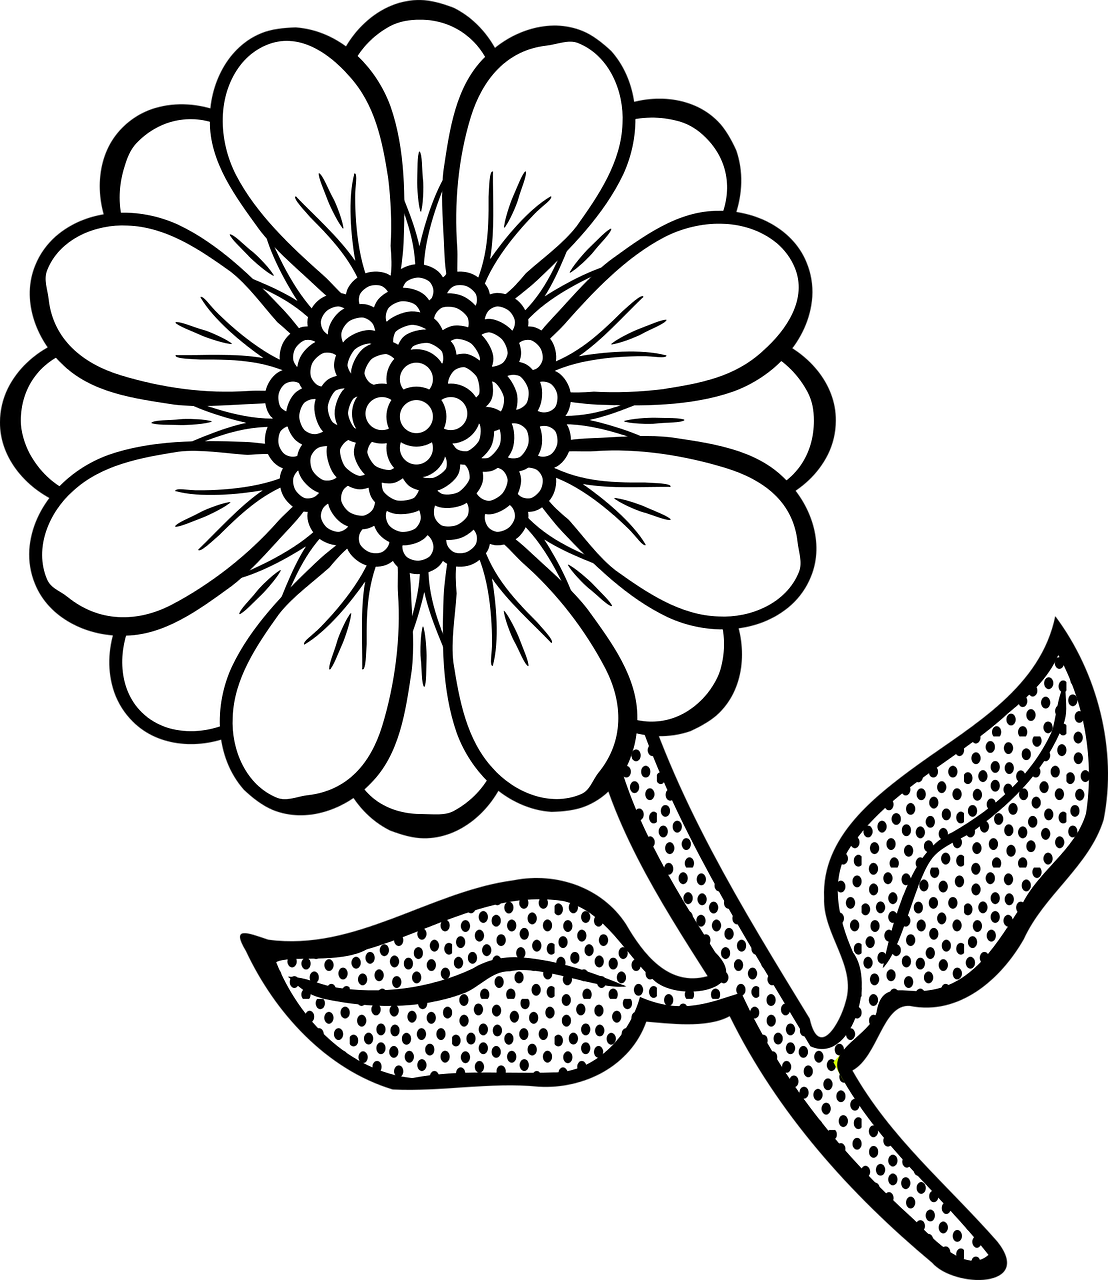 Free coloring pages spring flowers - Free Printable Flower Coloring Pages 16 Pics